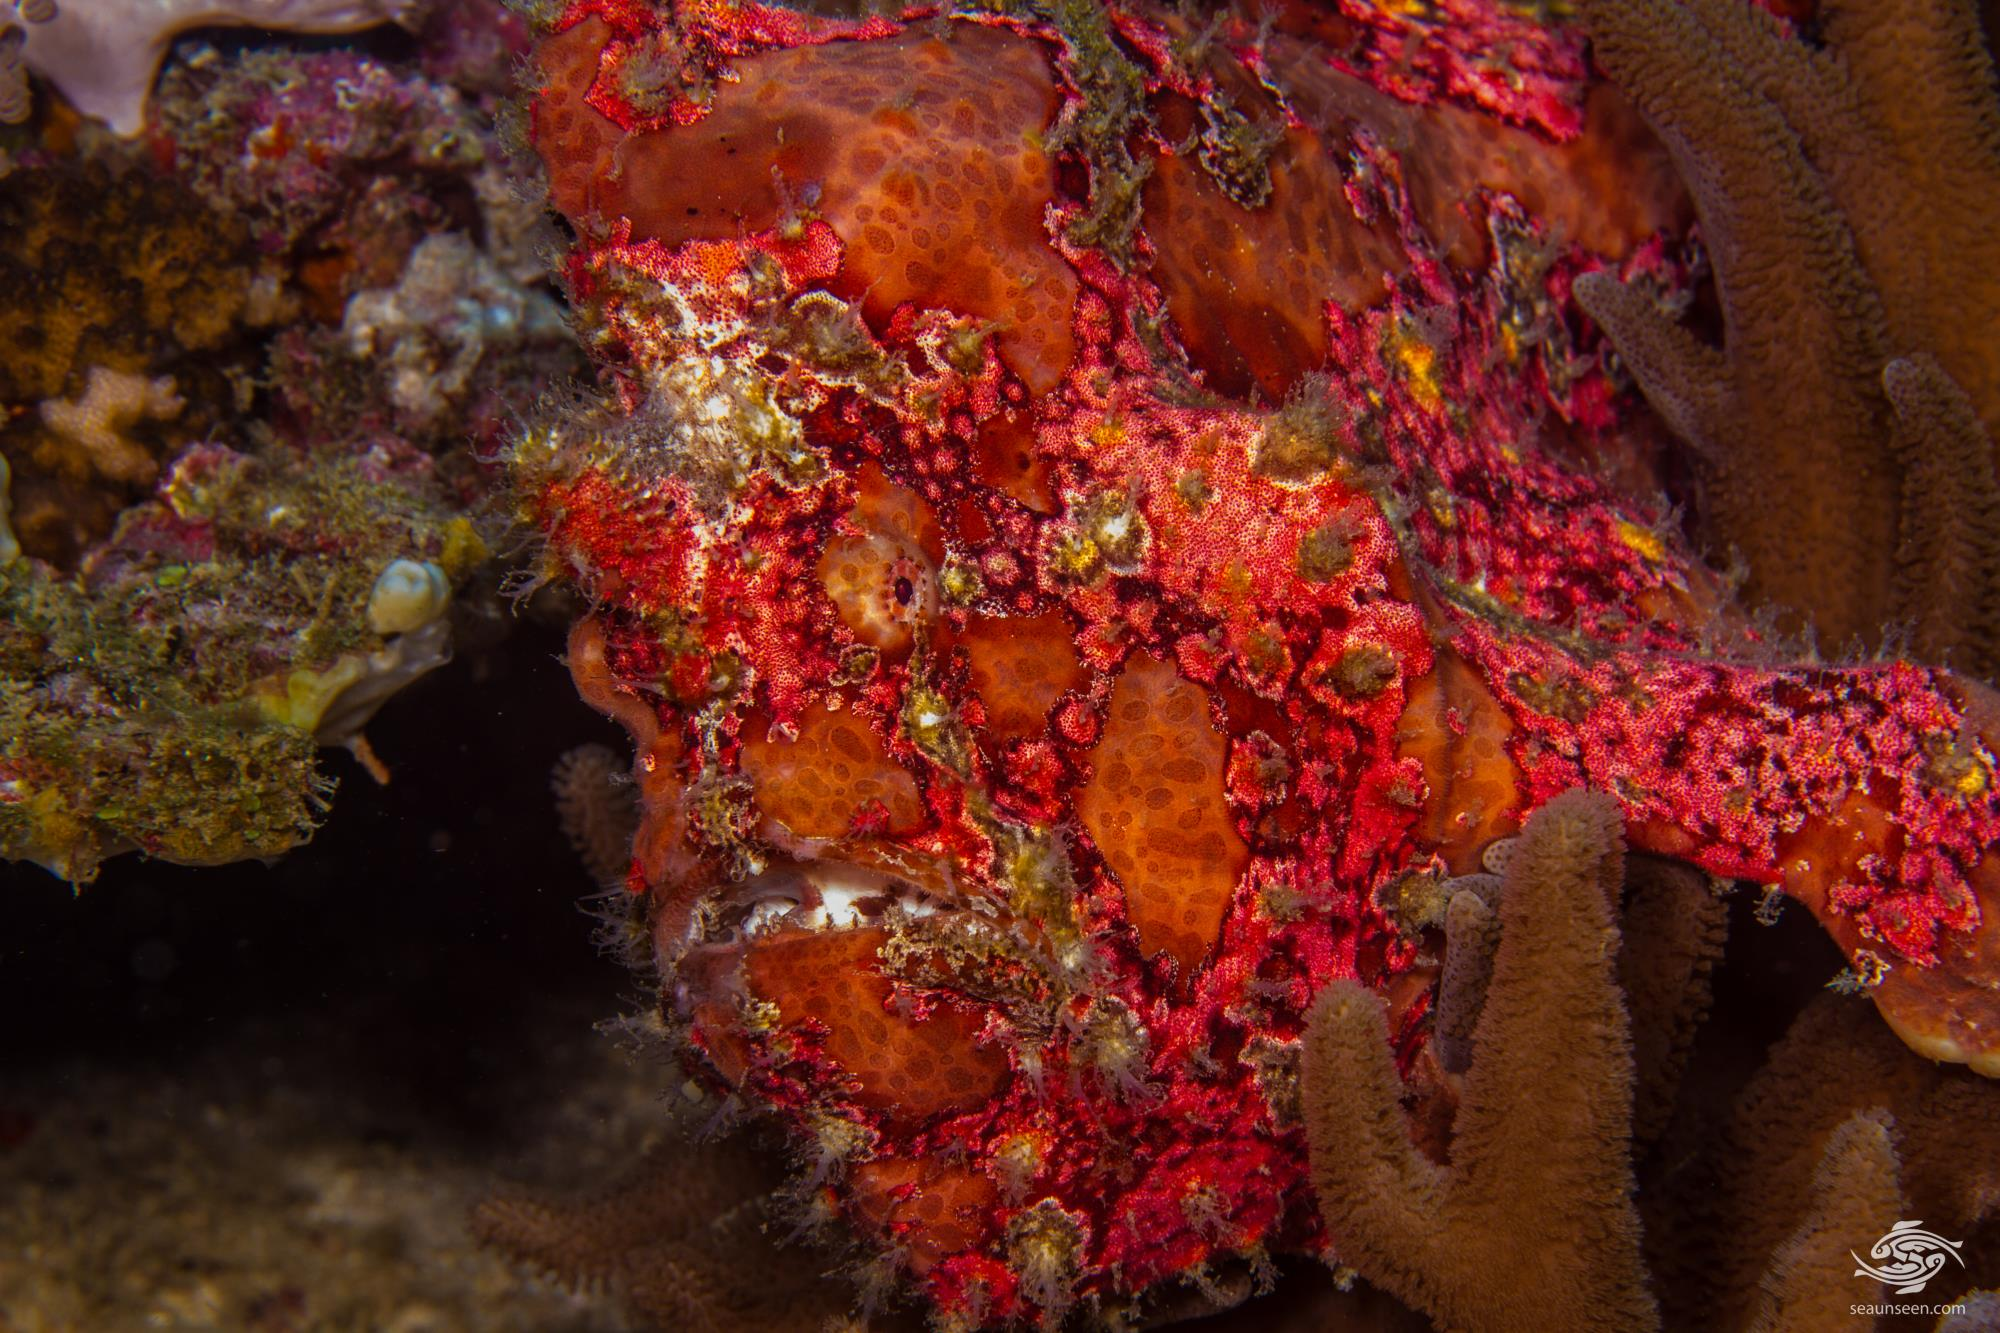 Antennarius commerson, Giant frogfish , also known as Commerson's Frogfish